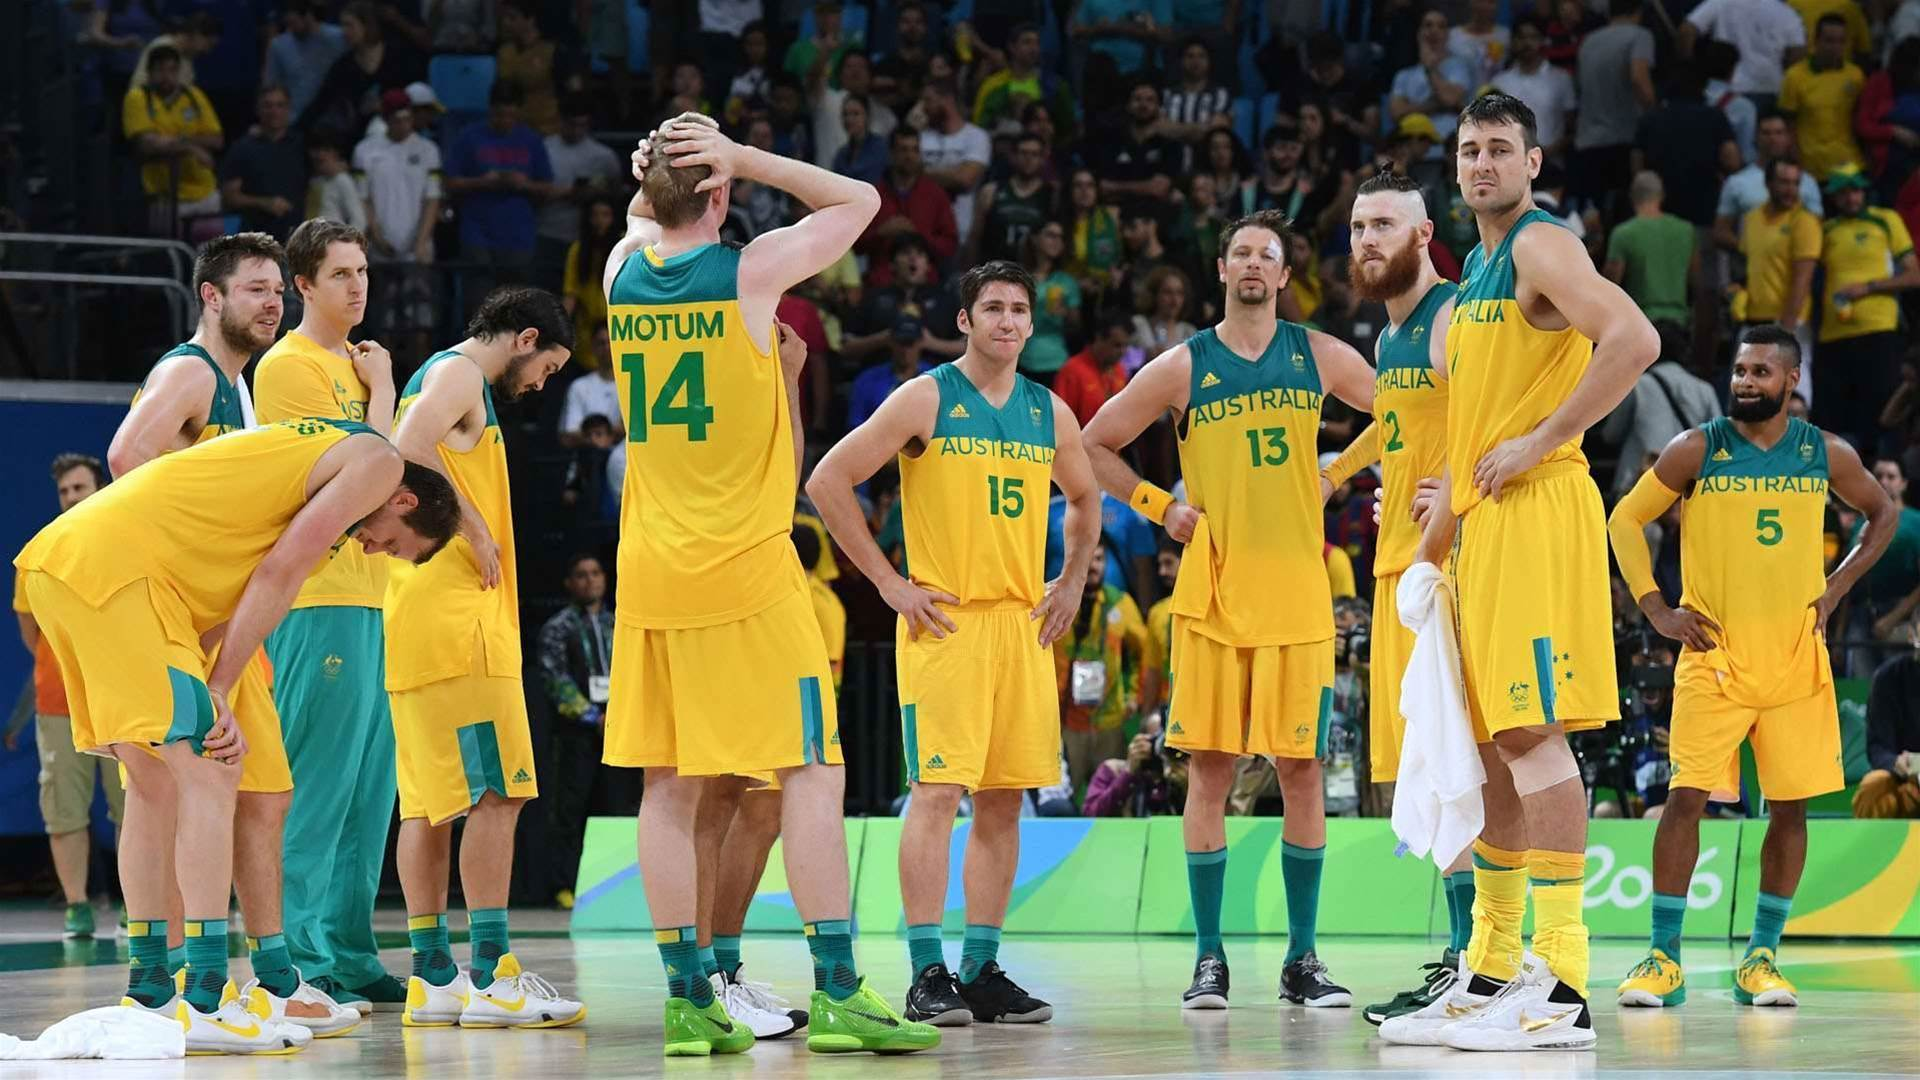 Echo Boomers: the bright future of Aussie hoops